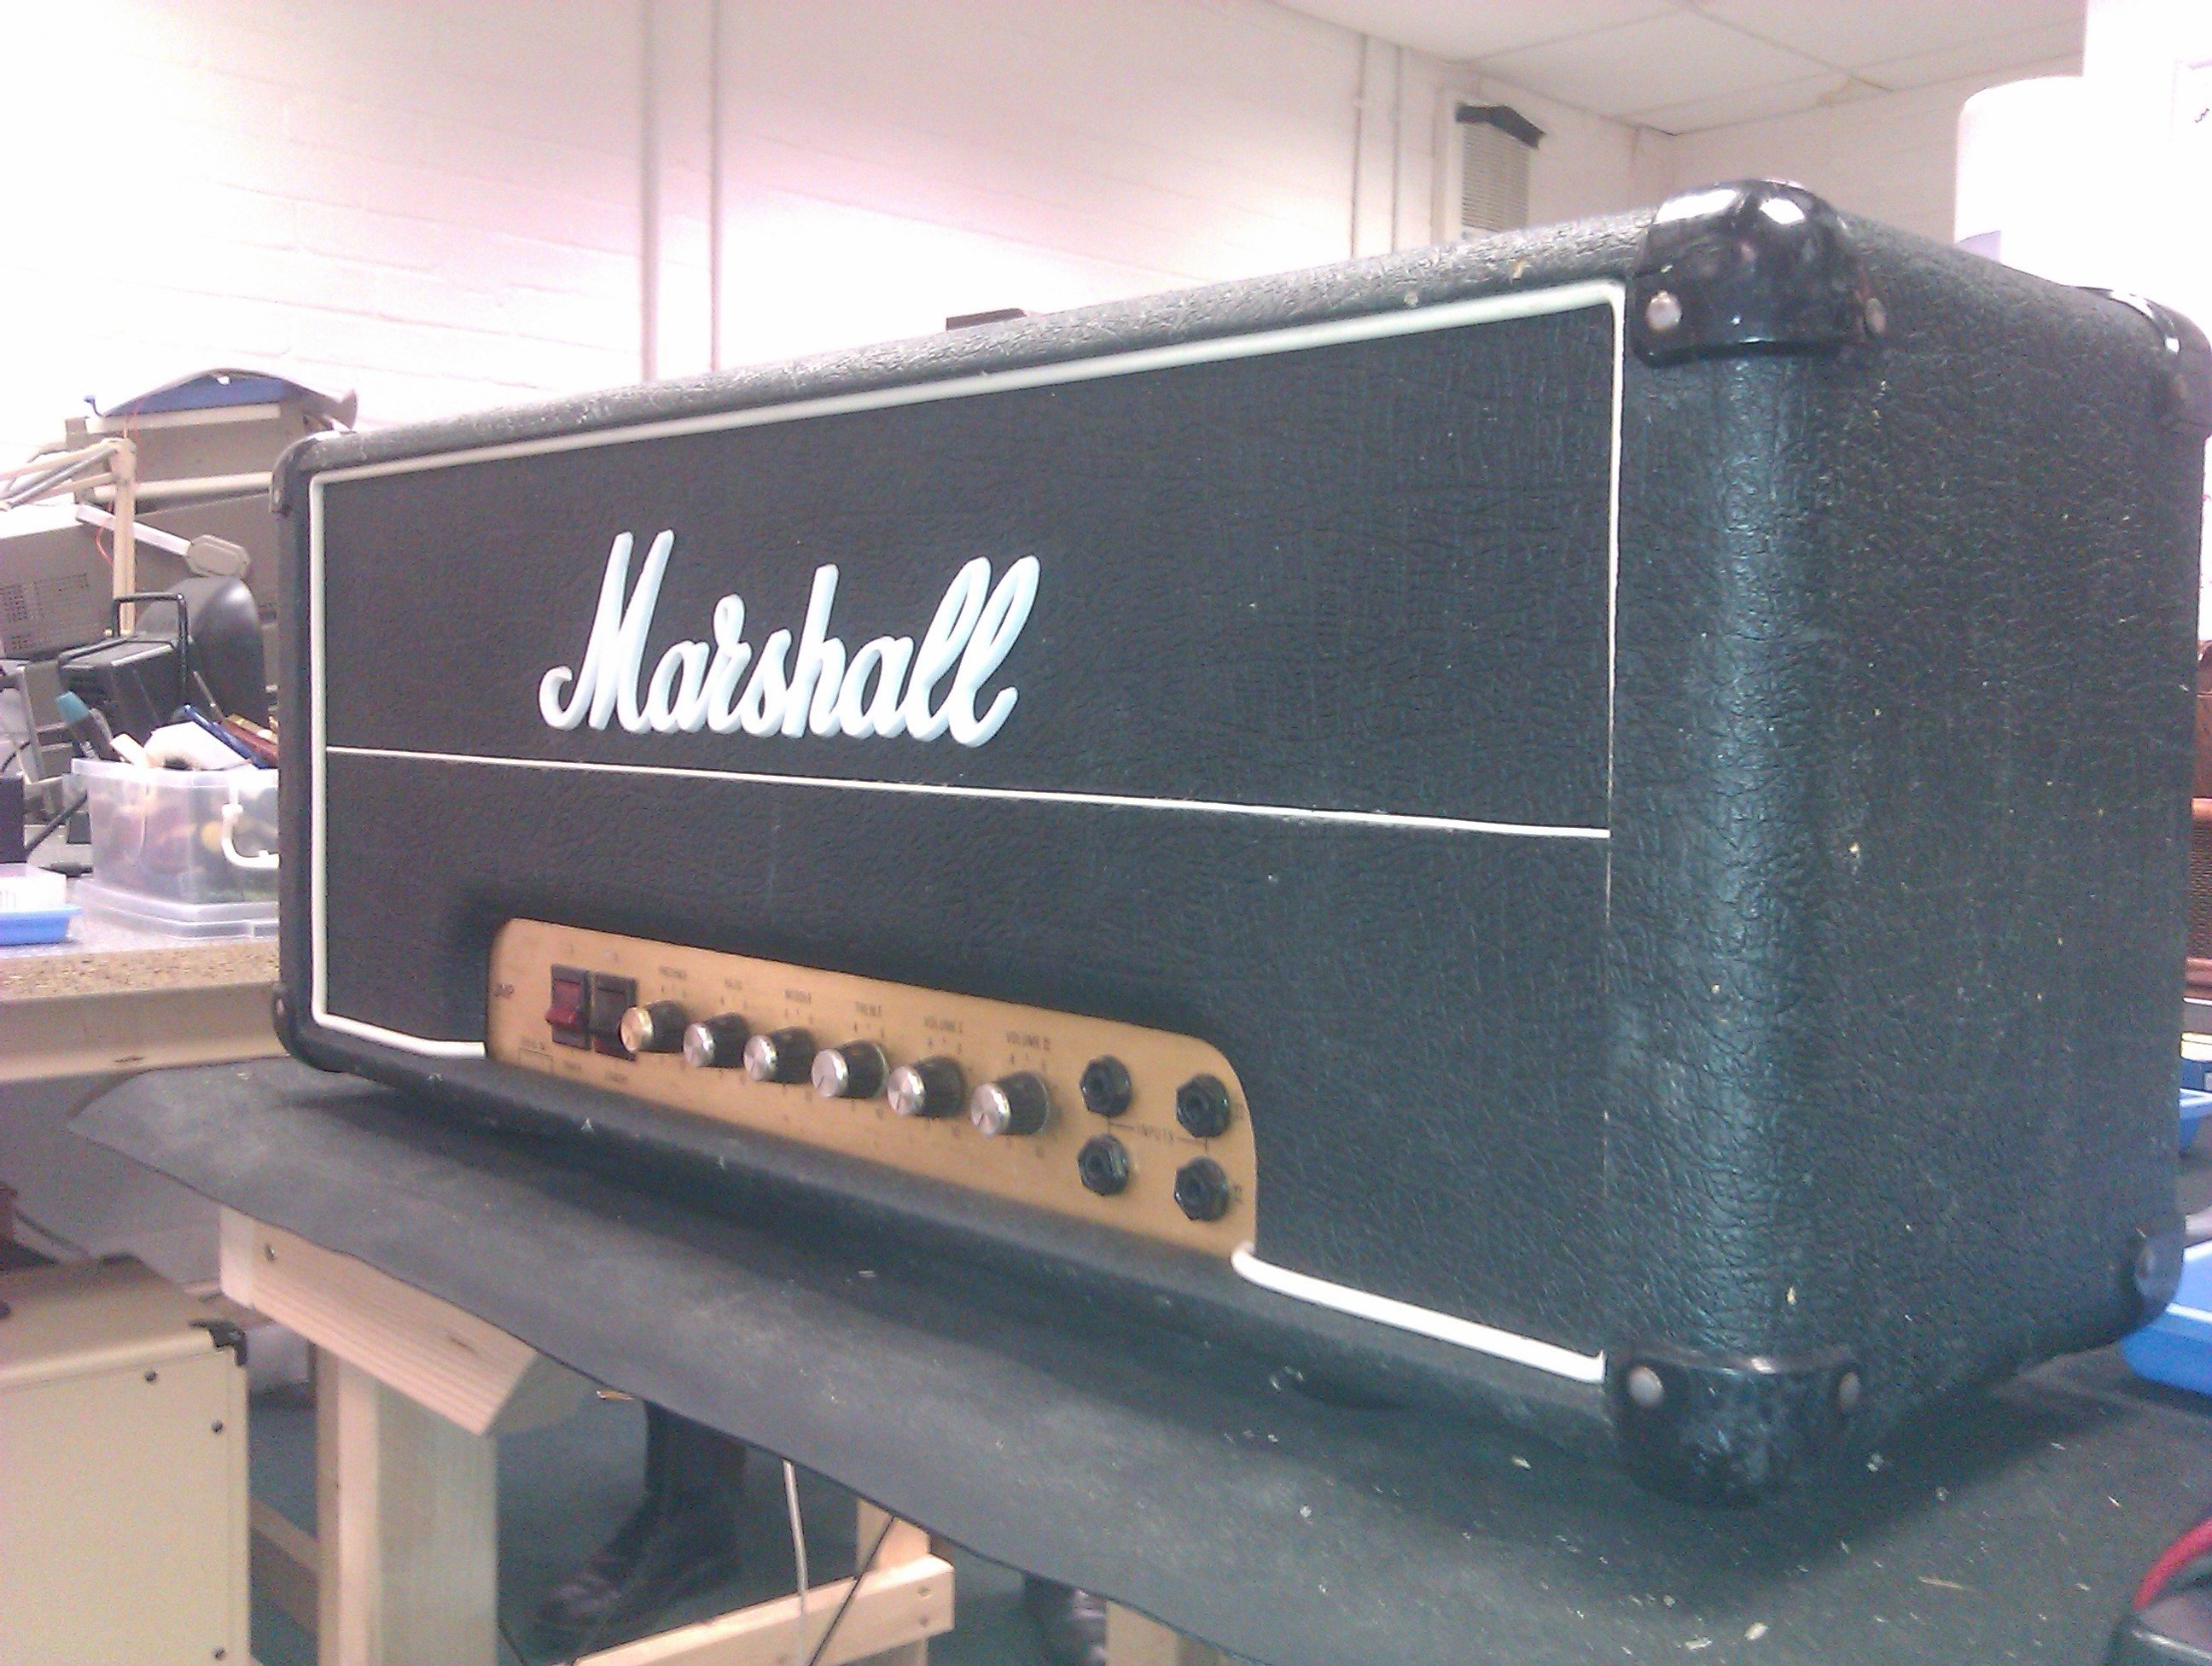 Classic bass sound from this lovely old Marshall amp.